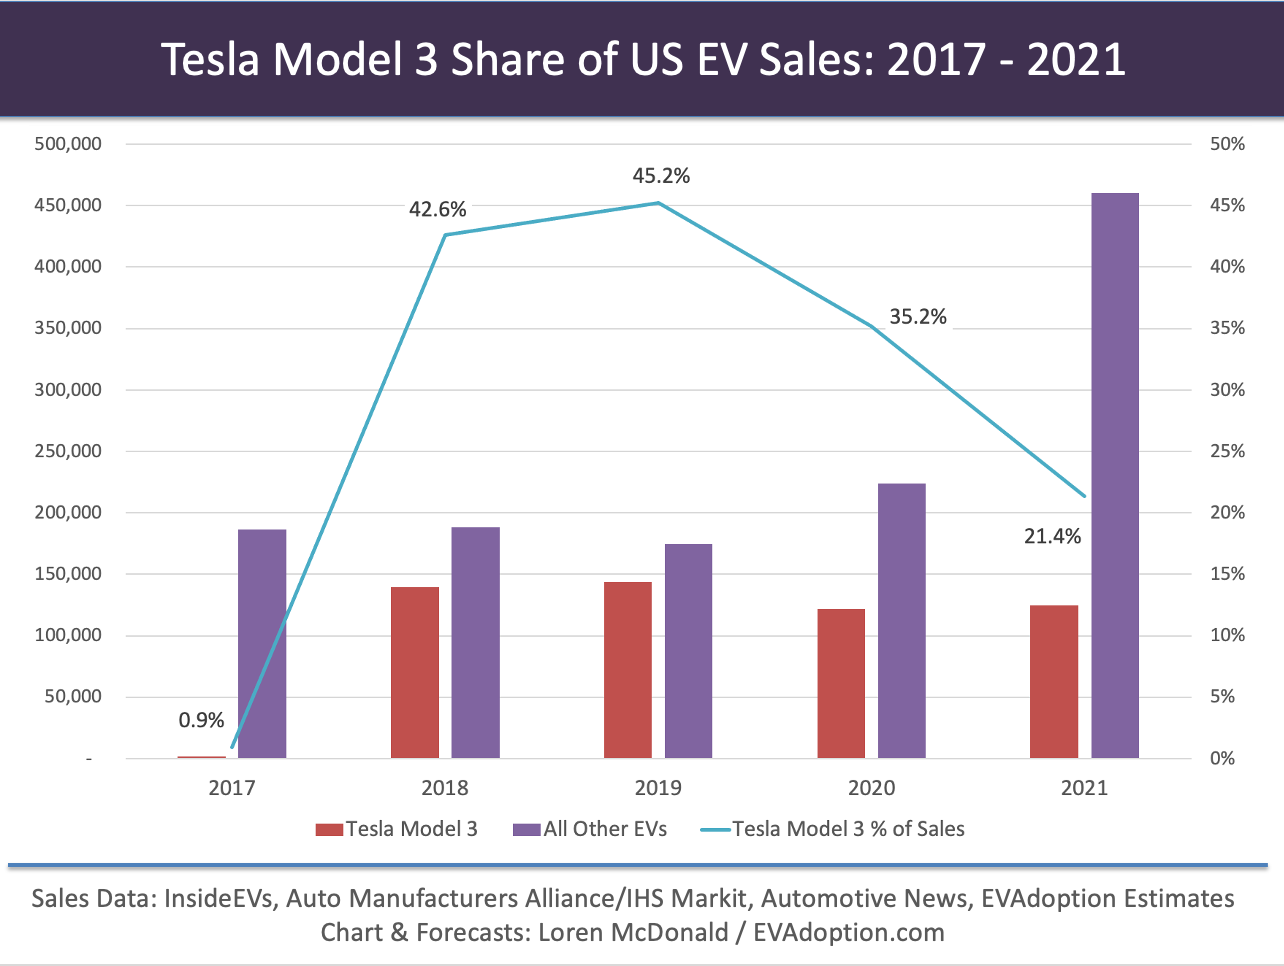 Tesla Model 3 Share of US EV Sales-2017-2021